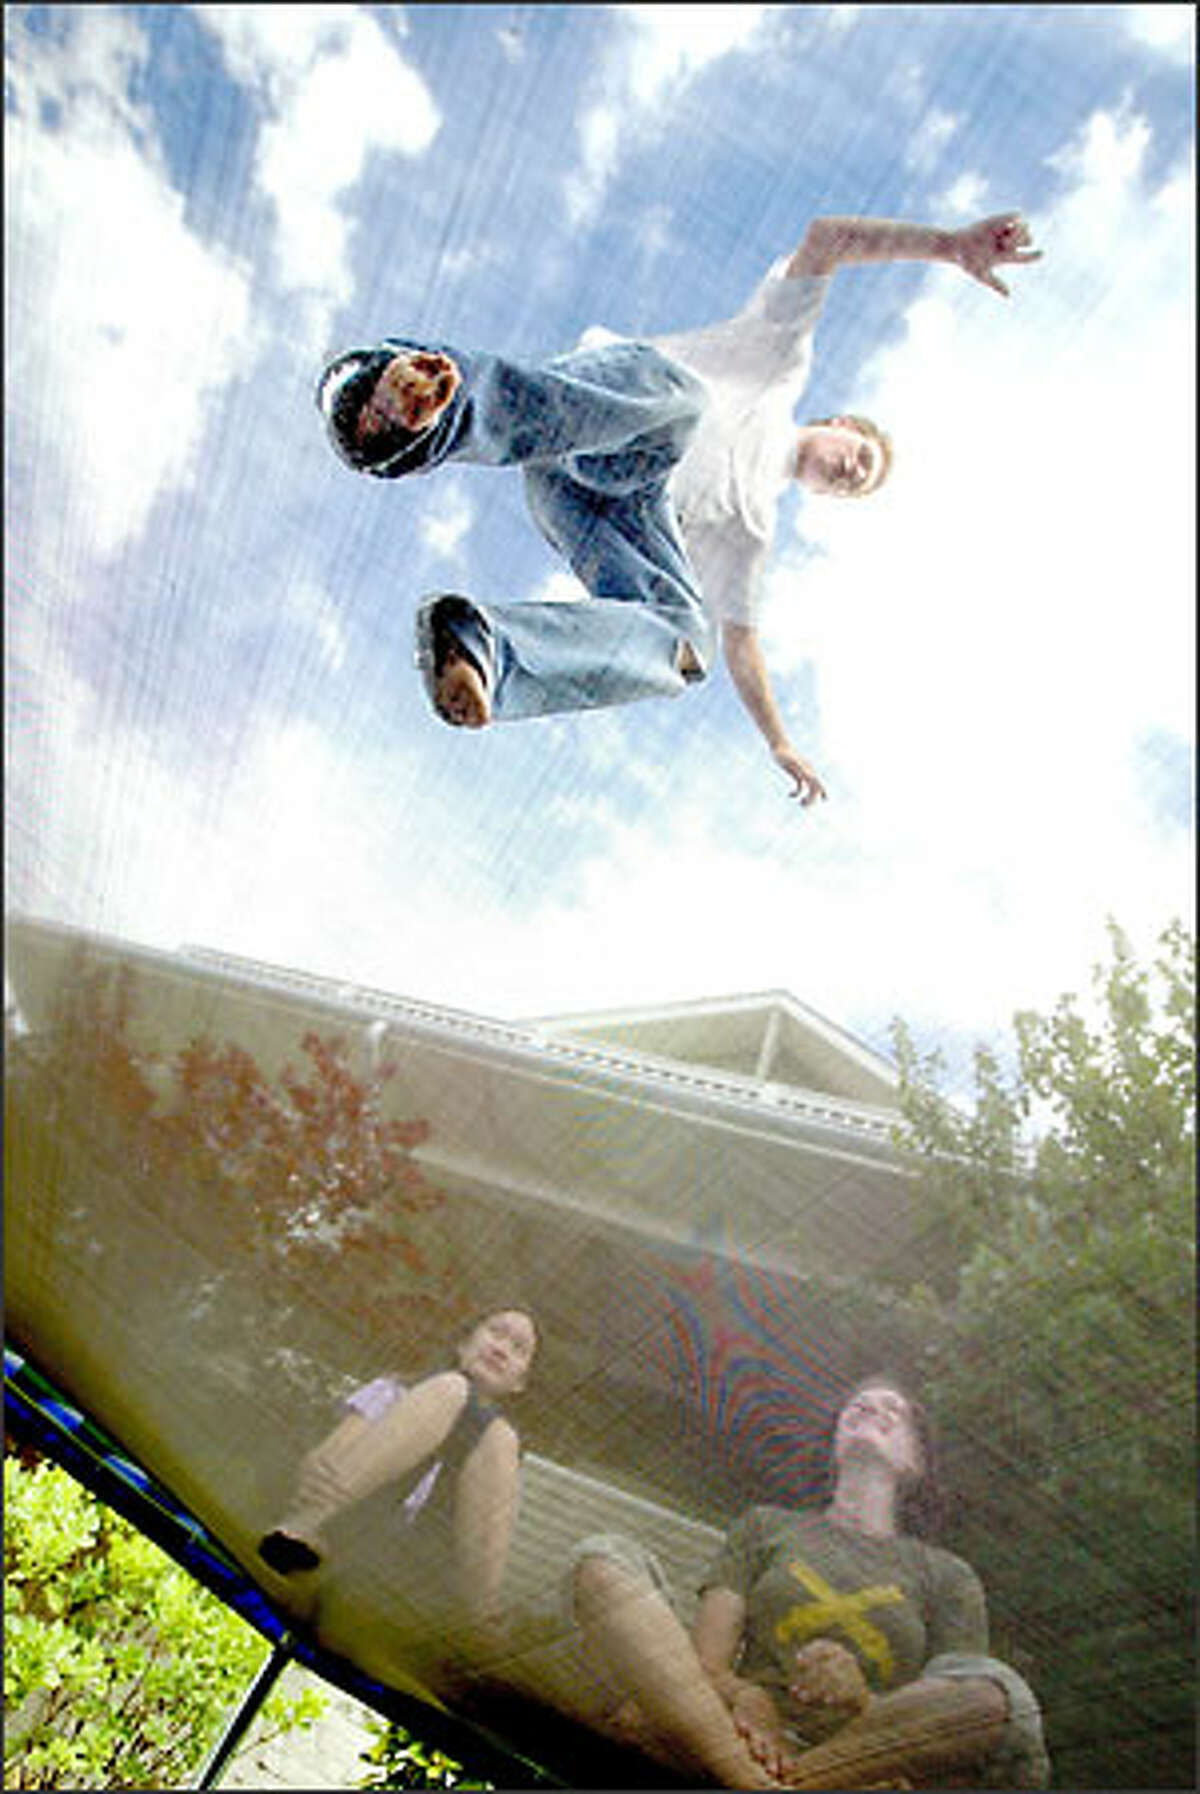 Elliott Swanson, 17, goes airborne as he works on a few trampoline maneuvers in front of his house in Magnolia under - or over - the watchful eyes two friends, Rebecca Gong, at left, and Jessi Knowles.